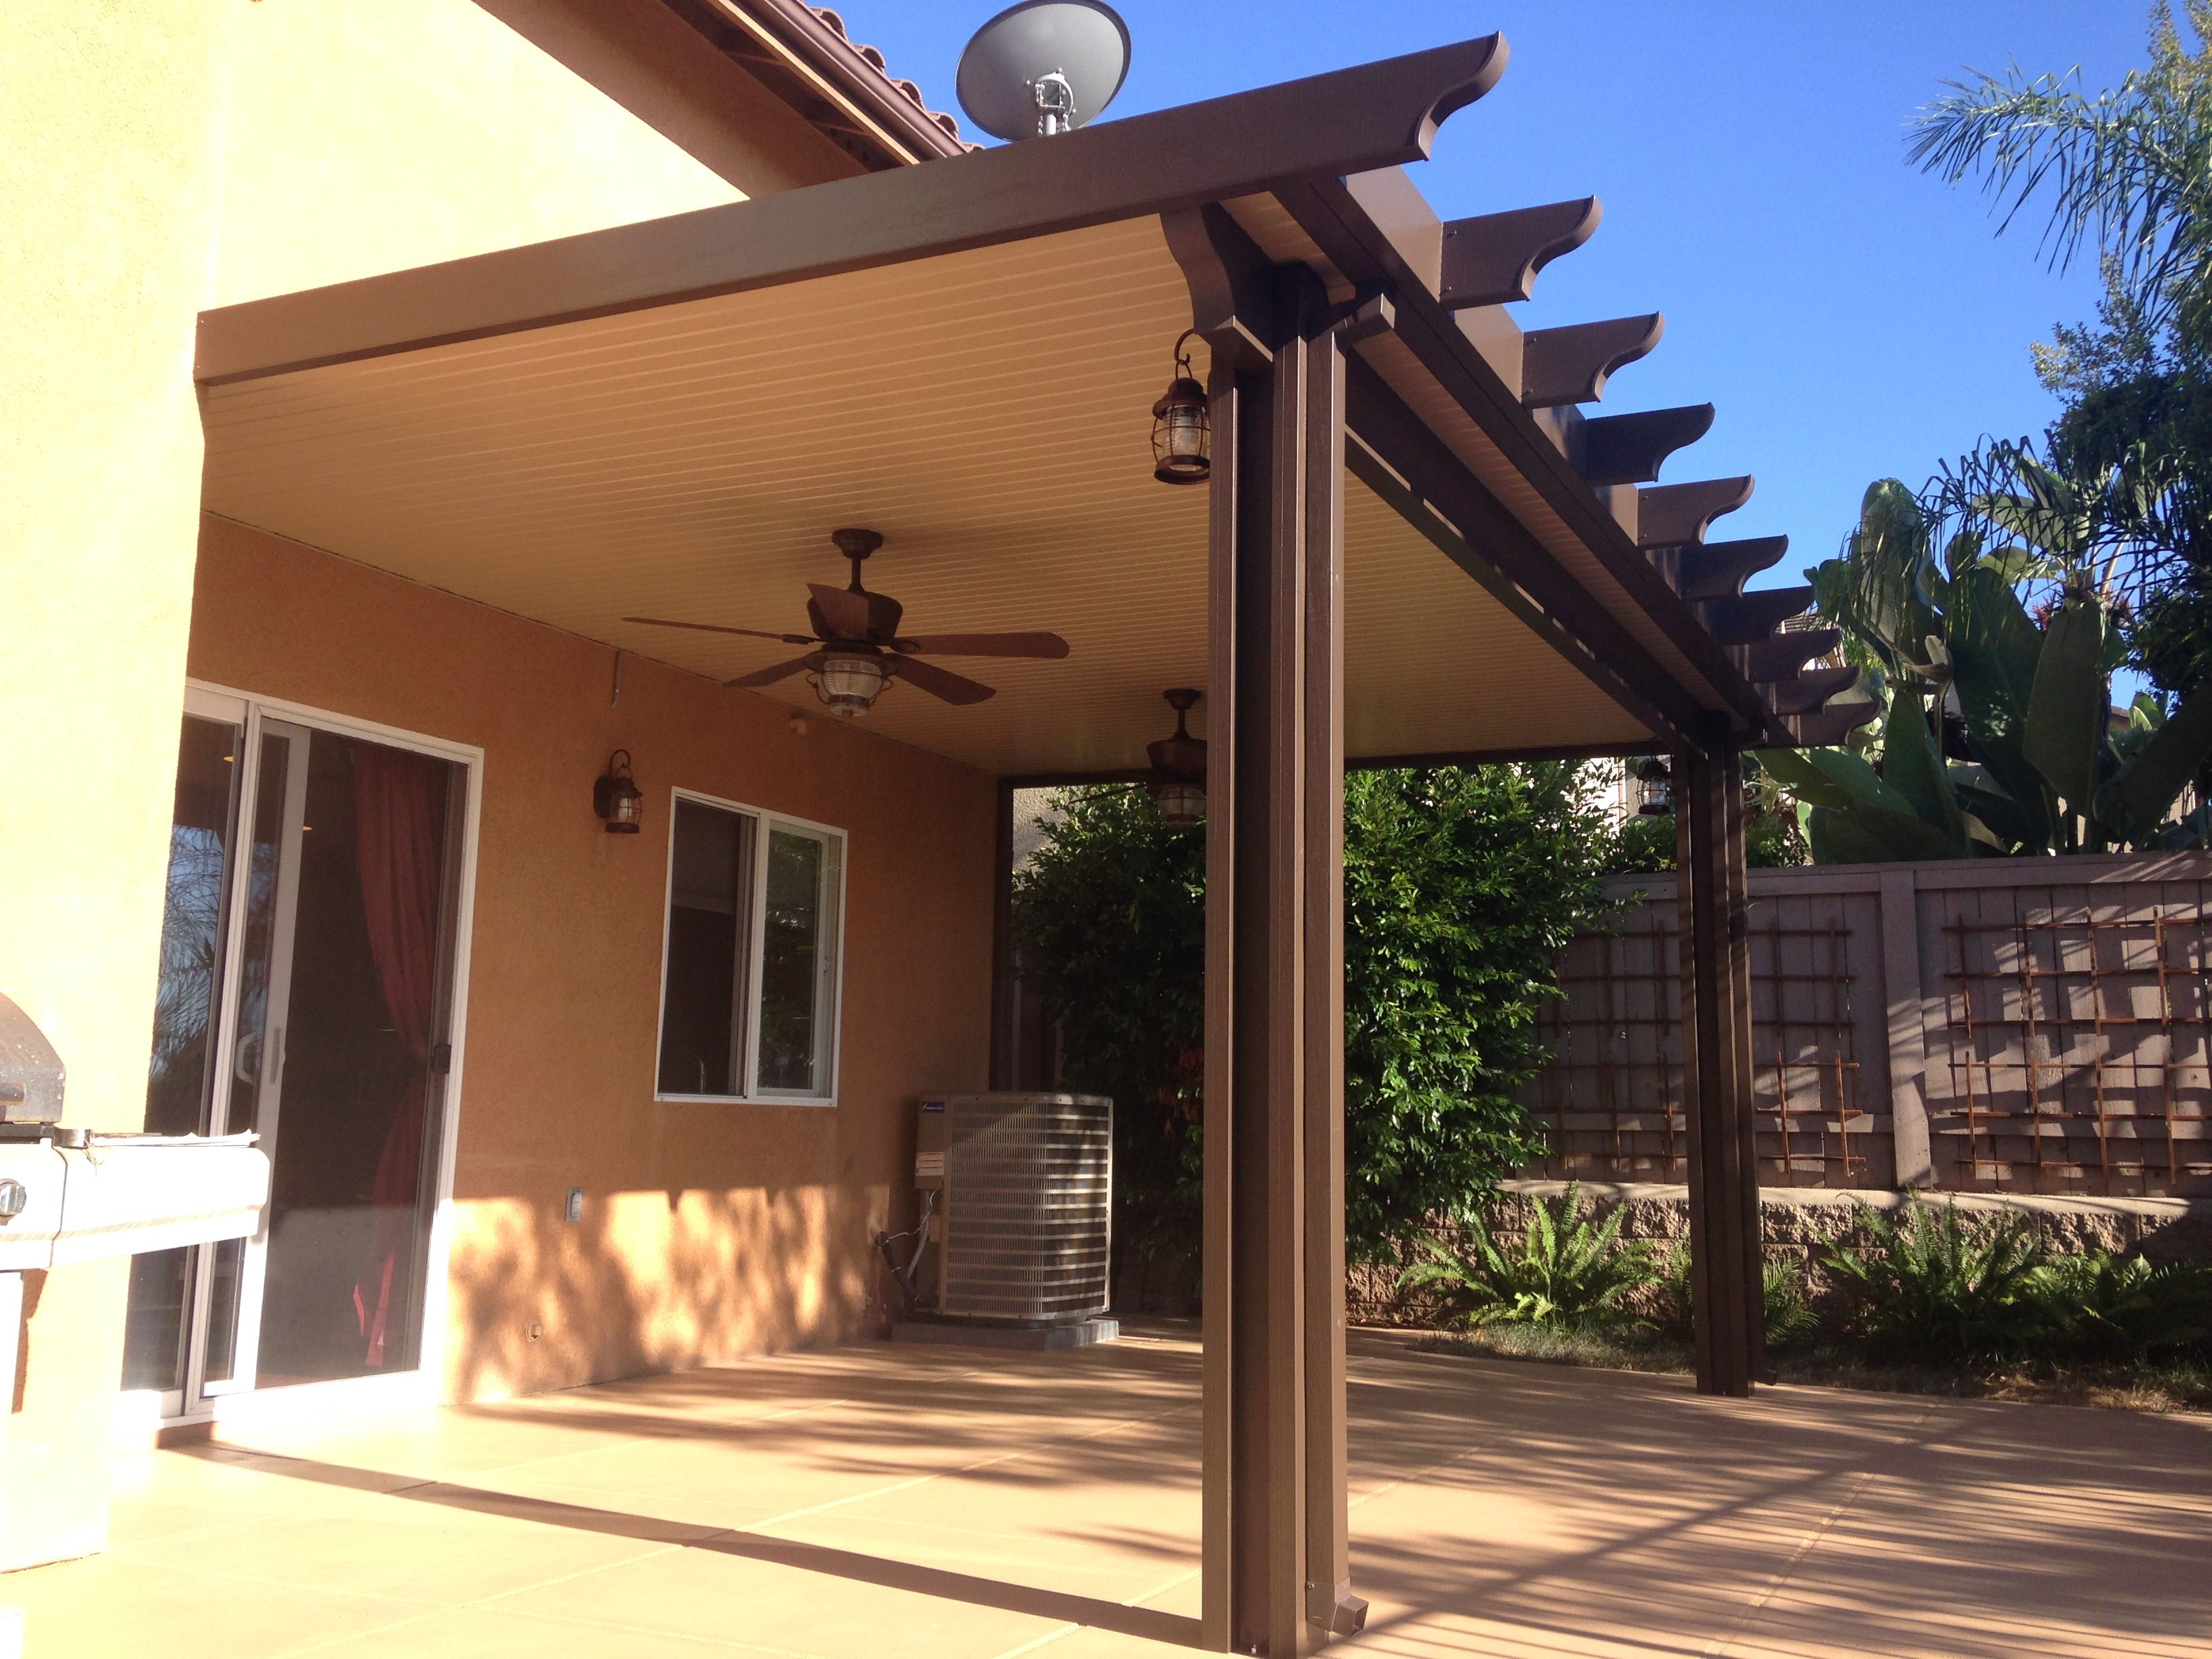 Exterior Design Beautiful Exterior Design With Alumawood Patio Cover Plus Ceiling Fan And Light Plus Glass Front Door Patio Covered Patio Back Porch Designs